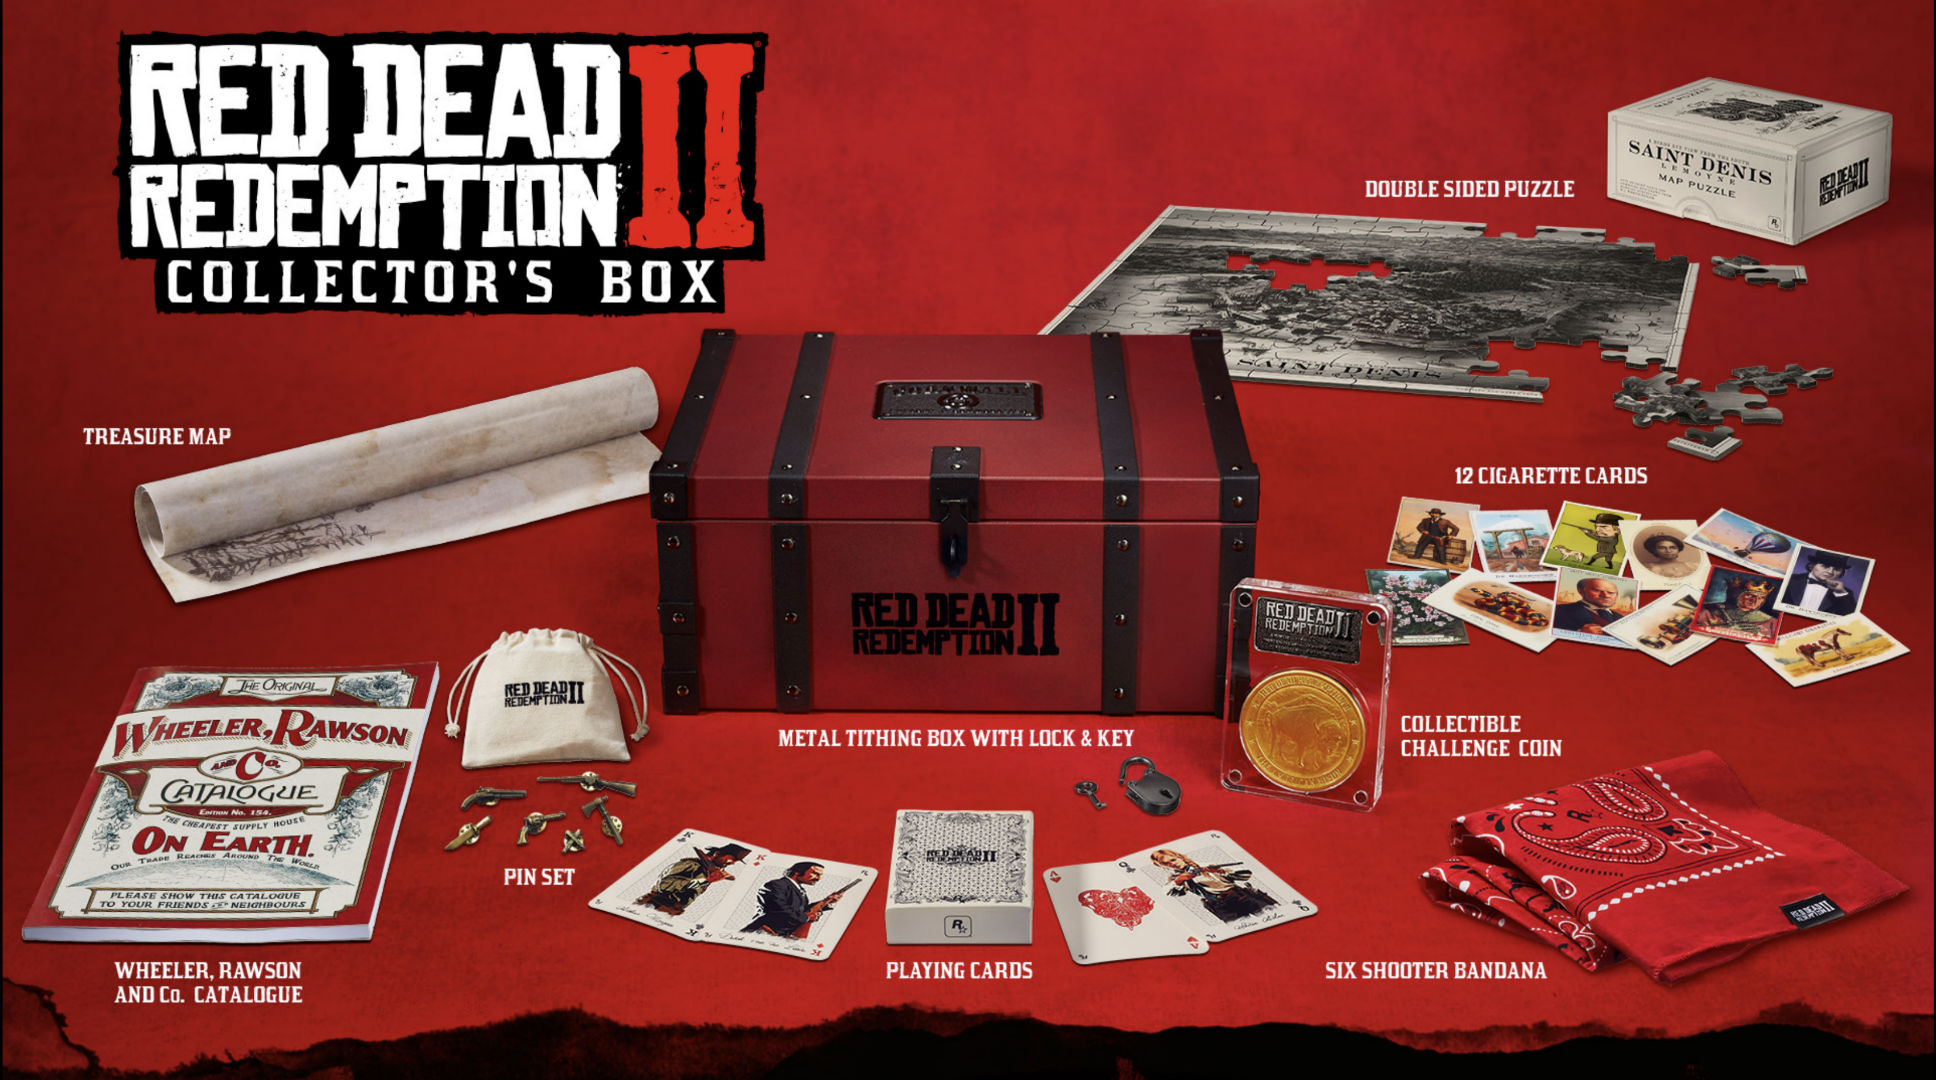 Red Dead Redemption Collectors